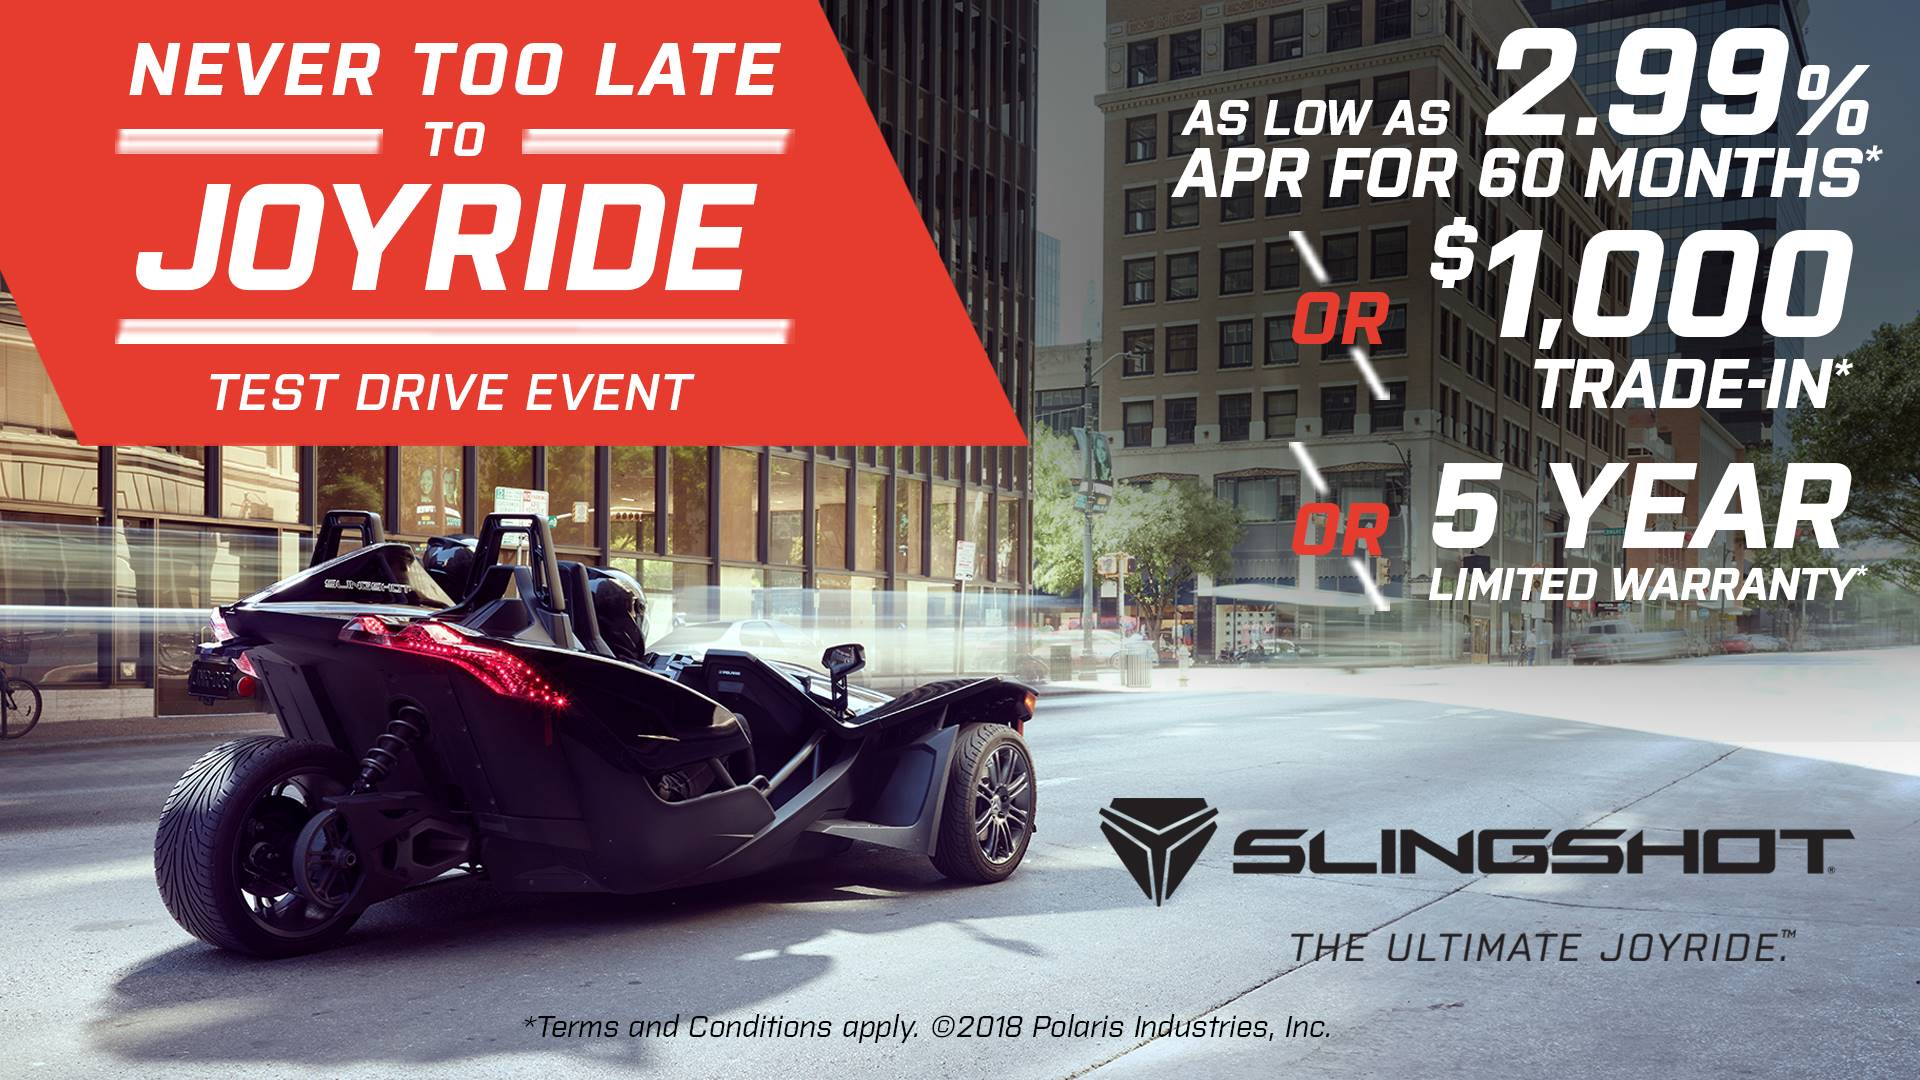 Slingshot - Never Too Late to JOYRIDE Test Drive Event